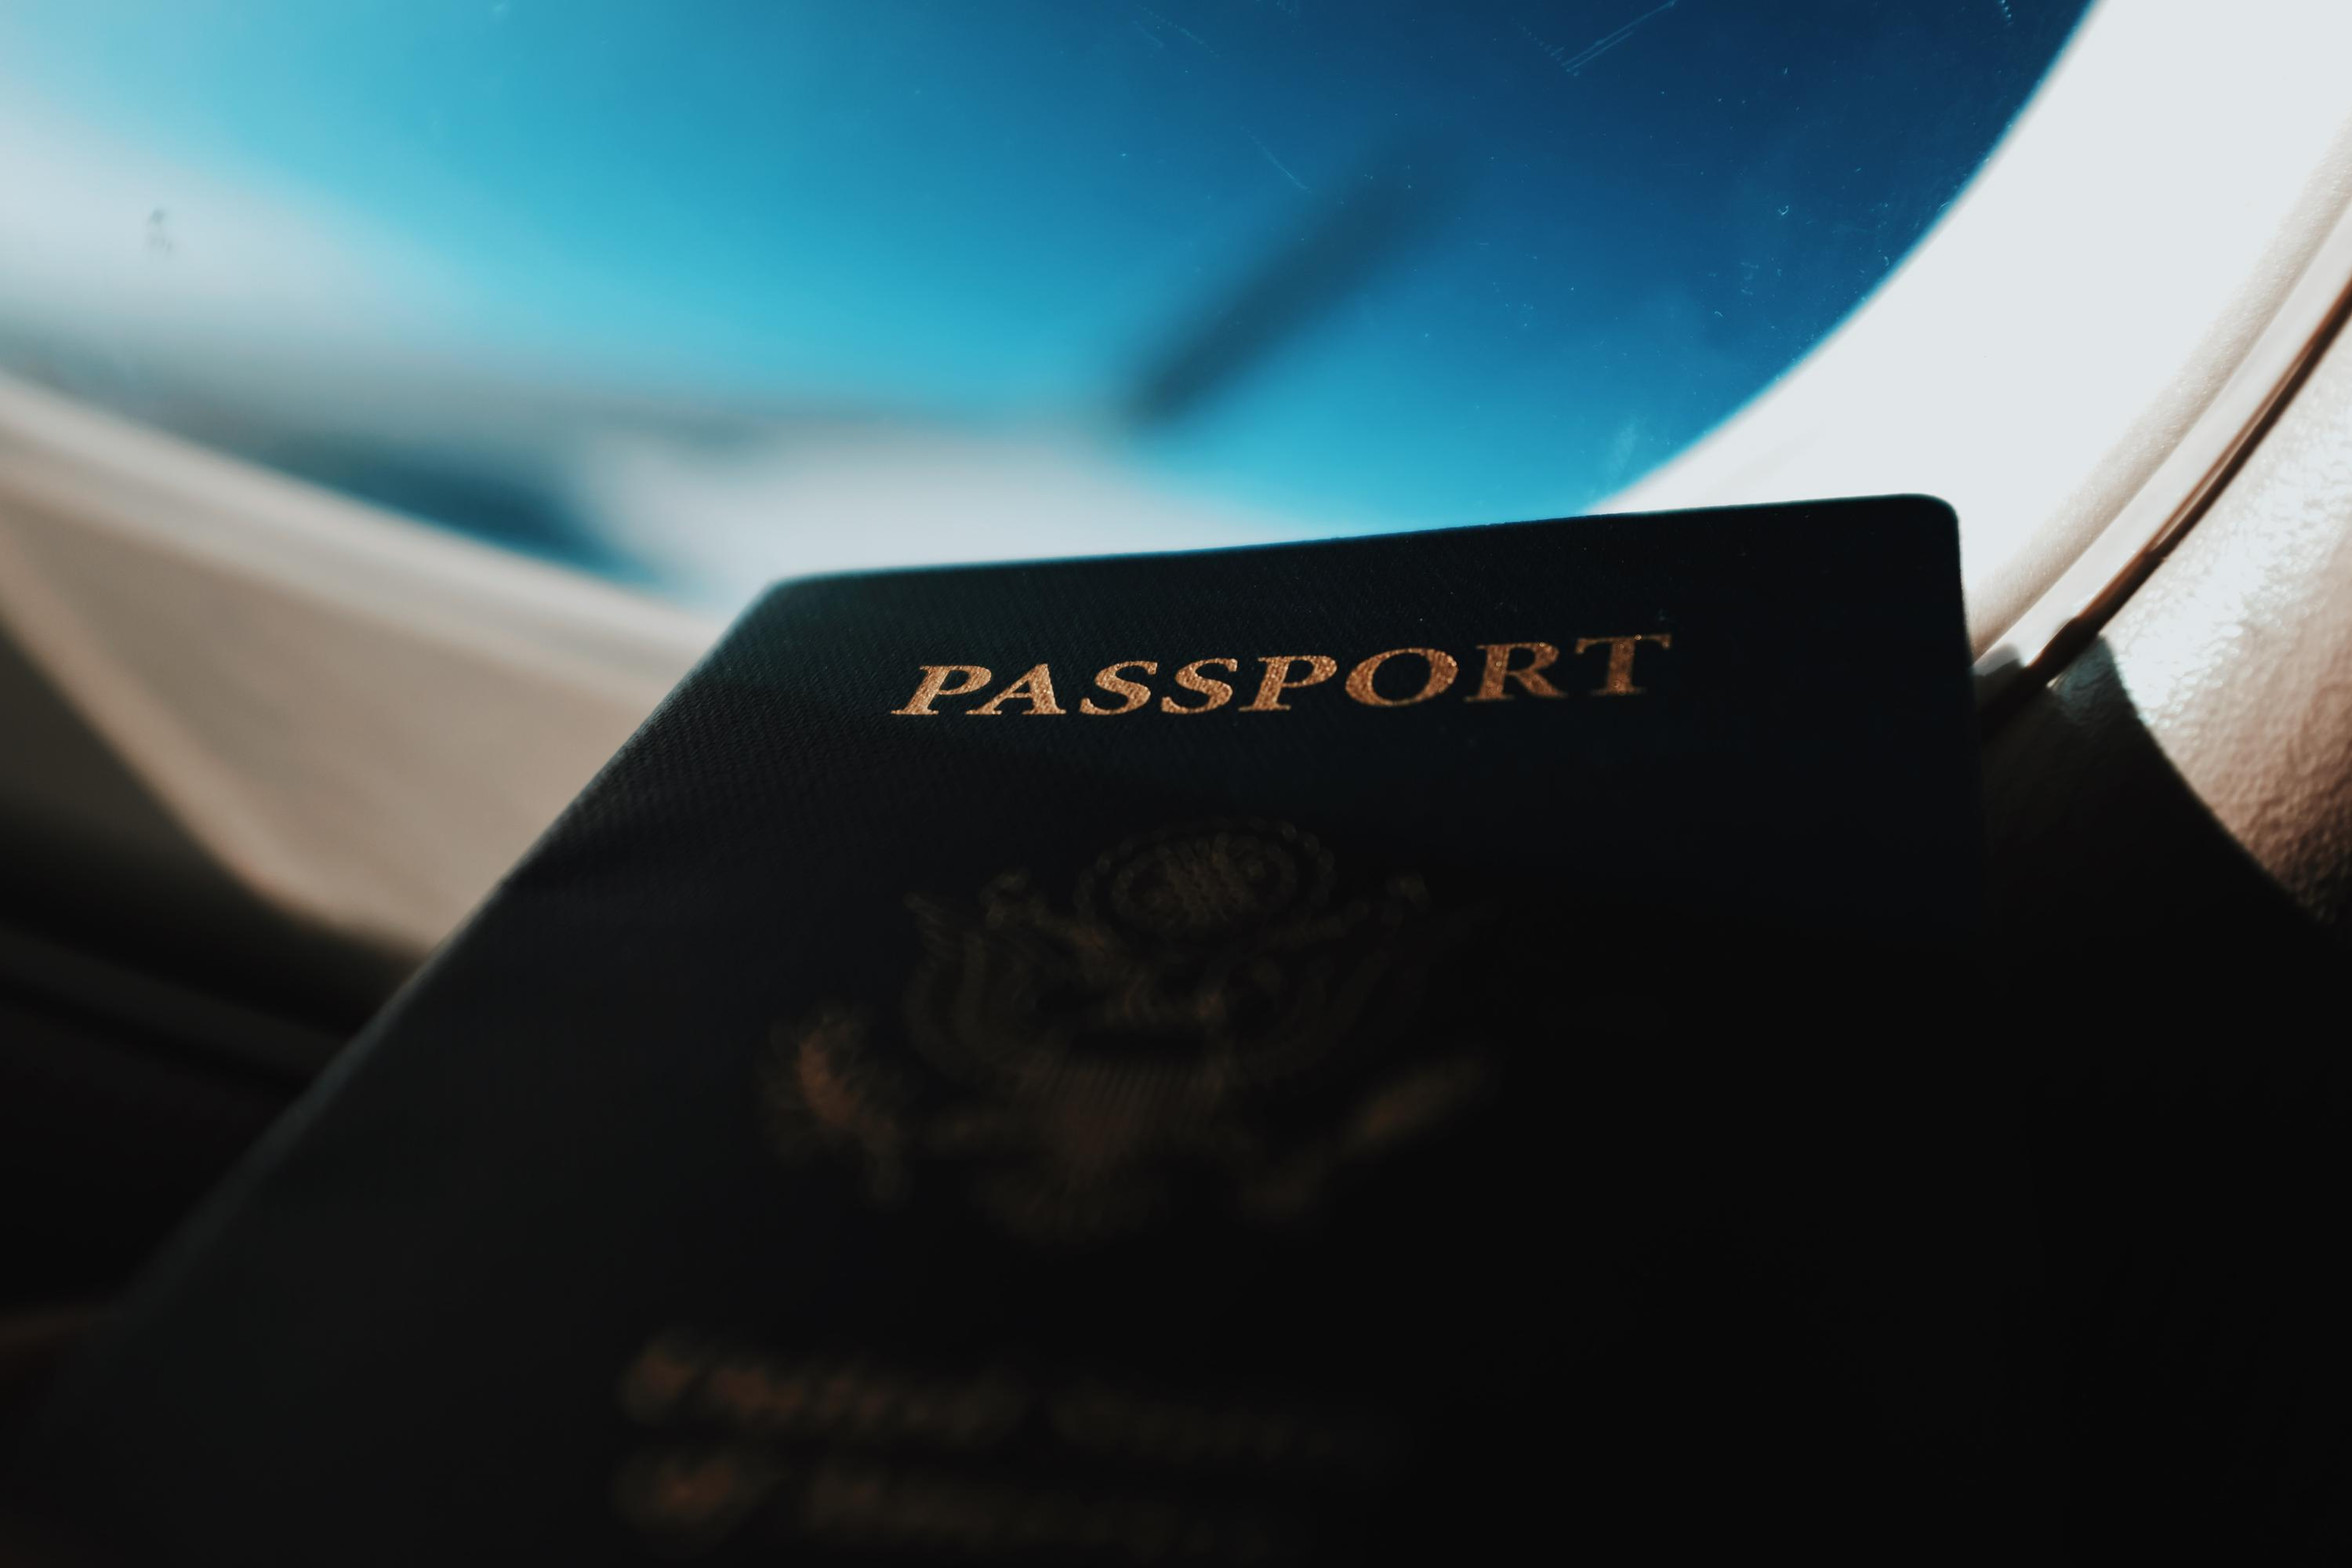 Passport image. Photo by Blake Guidry on Unsplash.